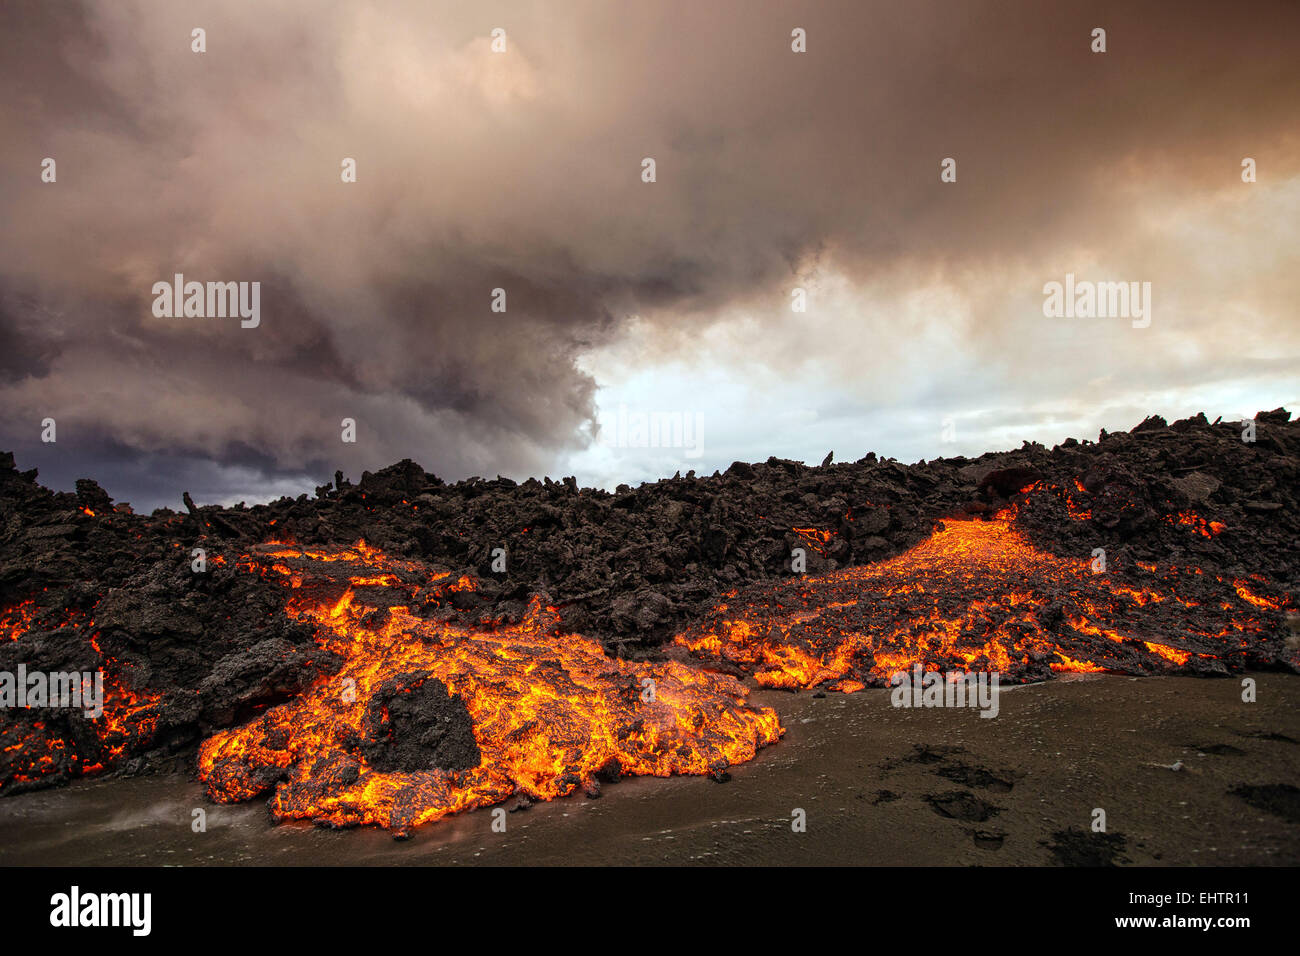 ERUPTION OF THE VOLCANO HOLUHRAUN, ICELAND - Stock Image